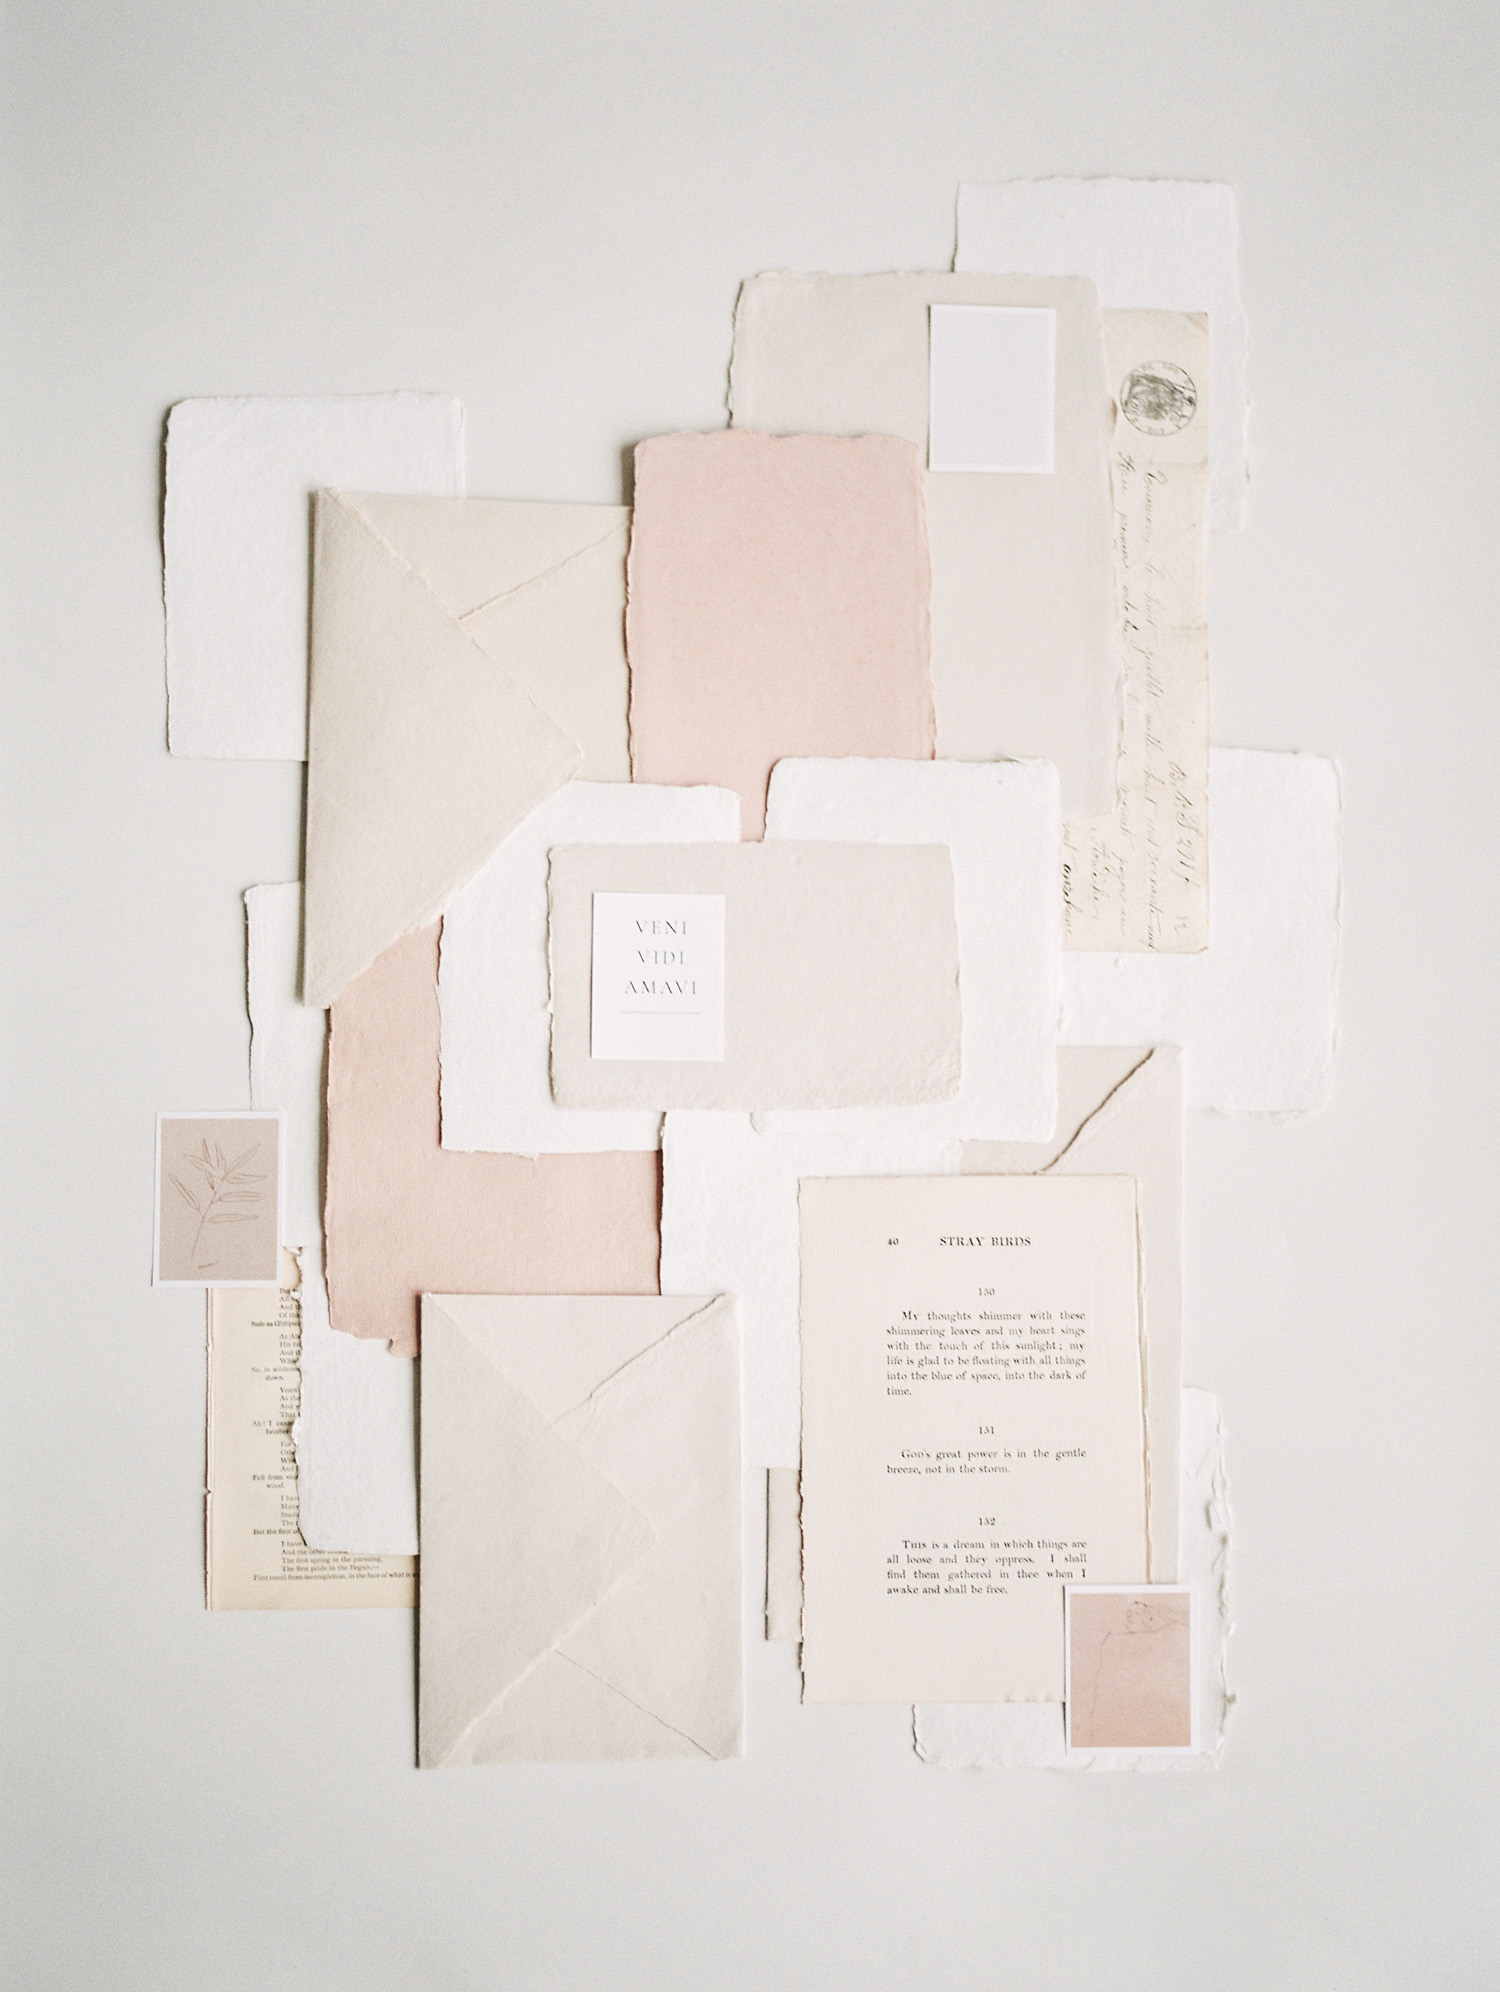 handmade paper and envelopes in warm tones mingle with antique book pages during a brand photoshoot in Michigan